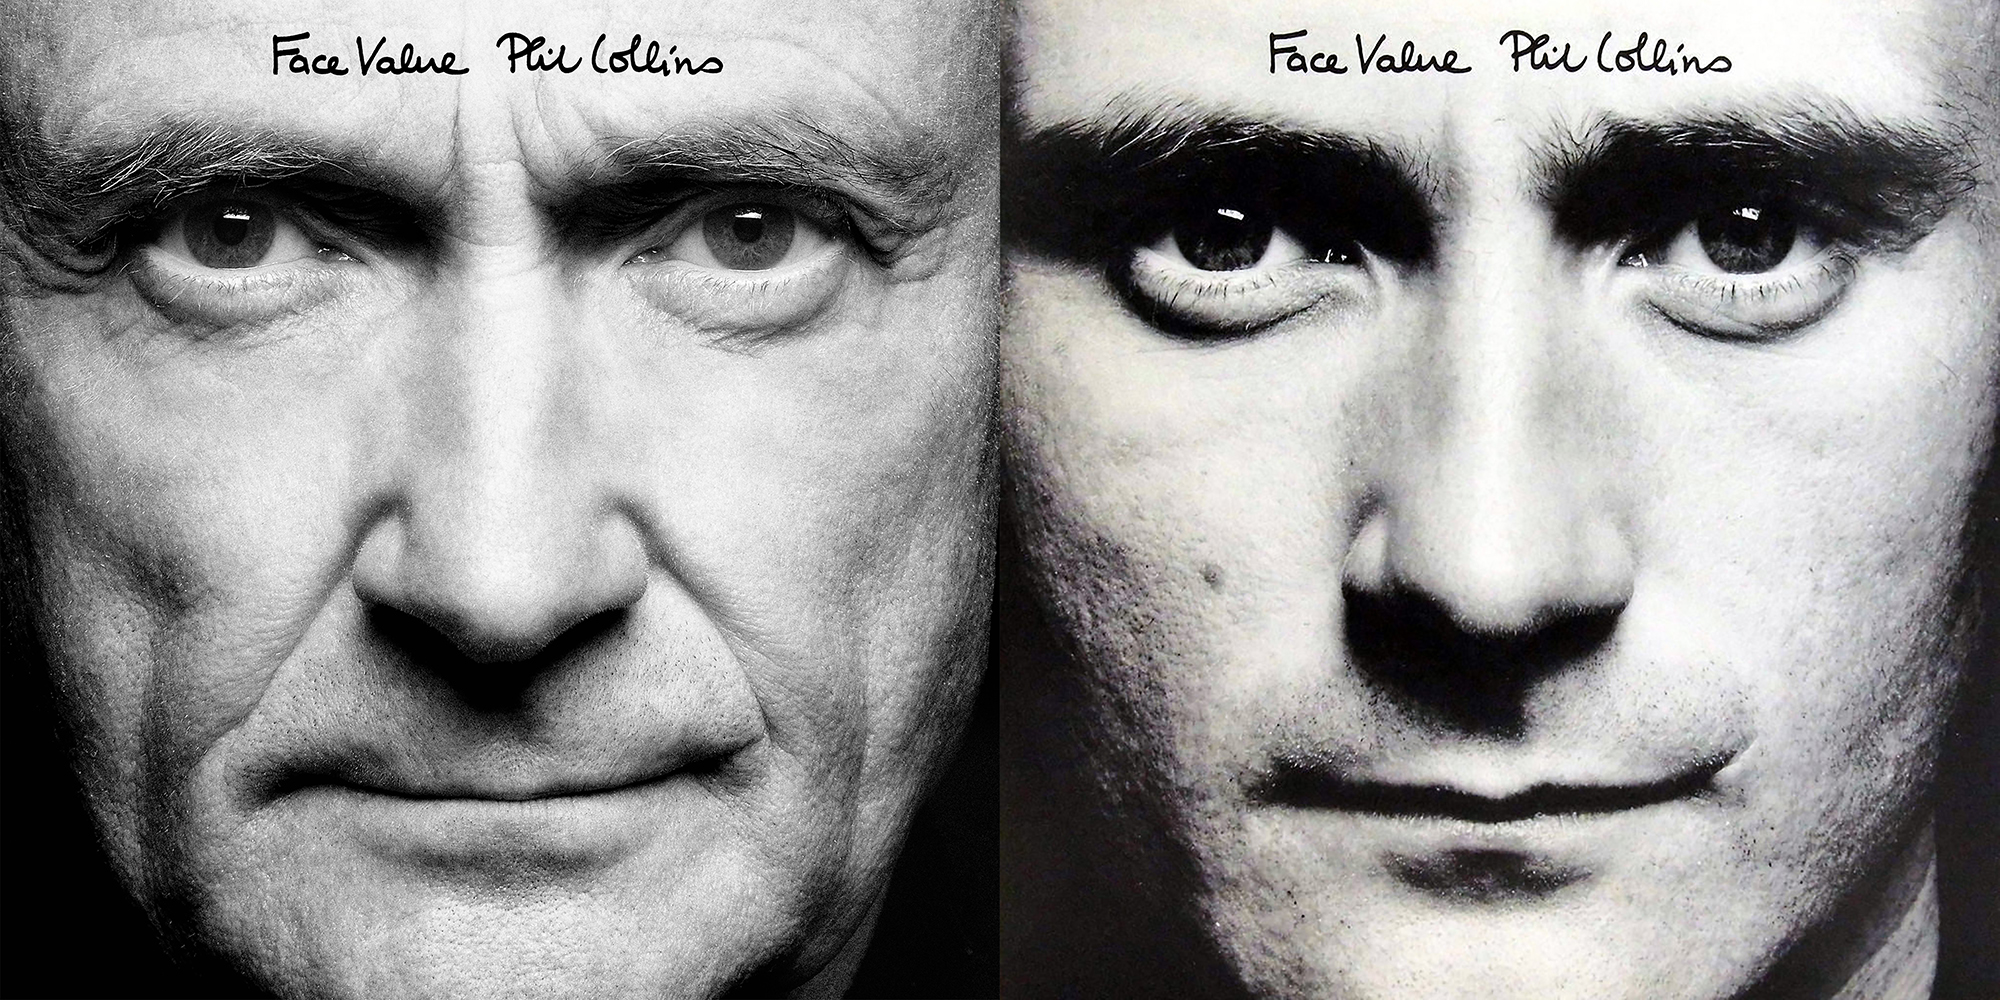 Phil Collins Face Value Merger